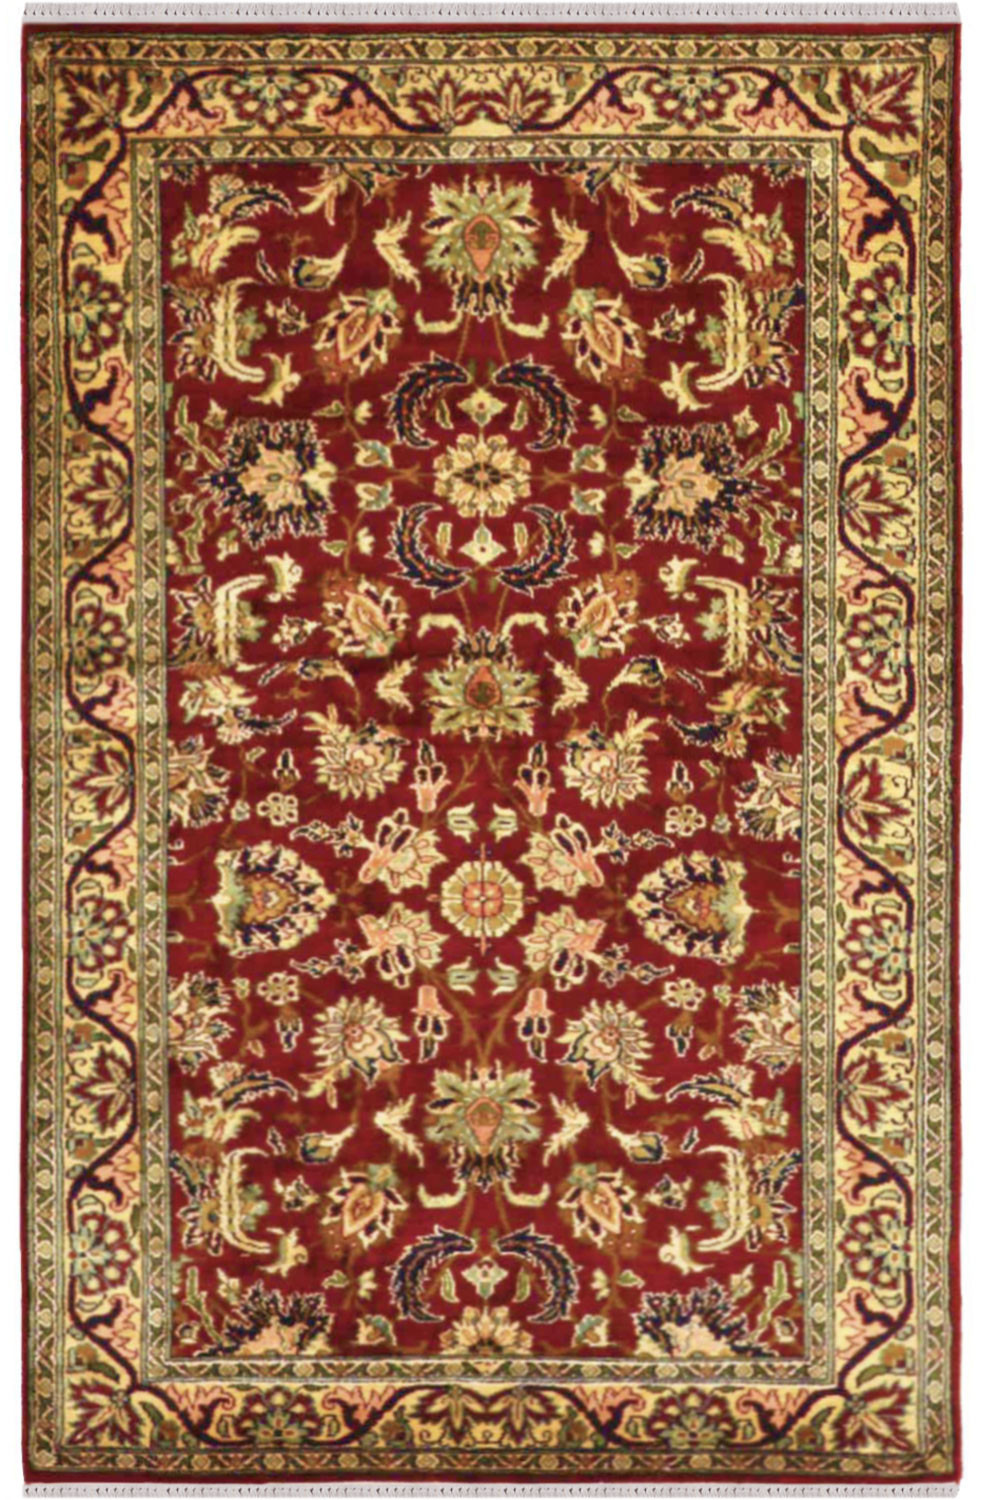 Beautiful Applique Kashan Silk Carpet In Maroon Color At